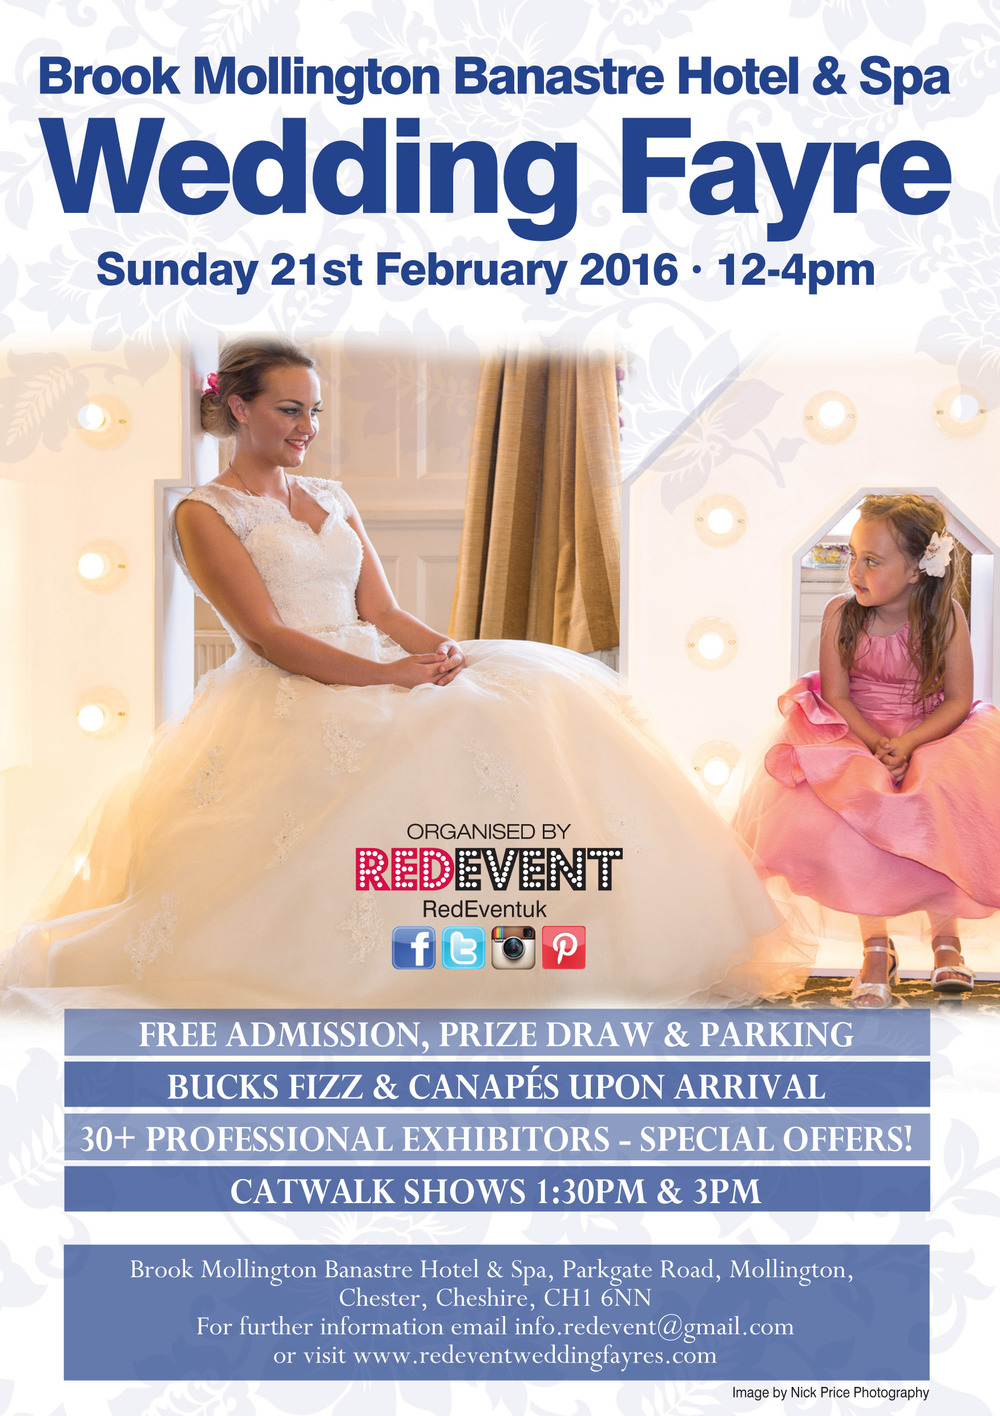 Brook Mollington Banastre Wedding Fayre